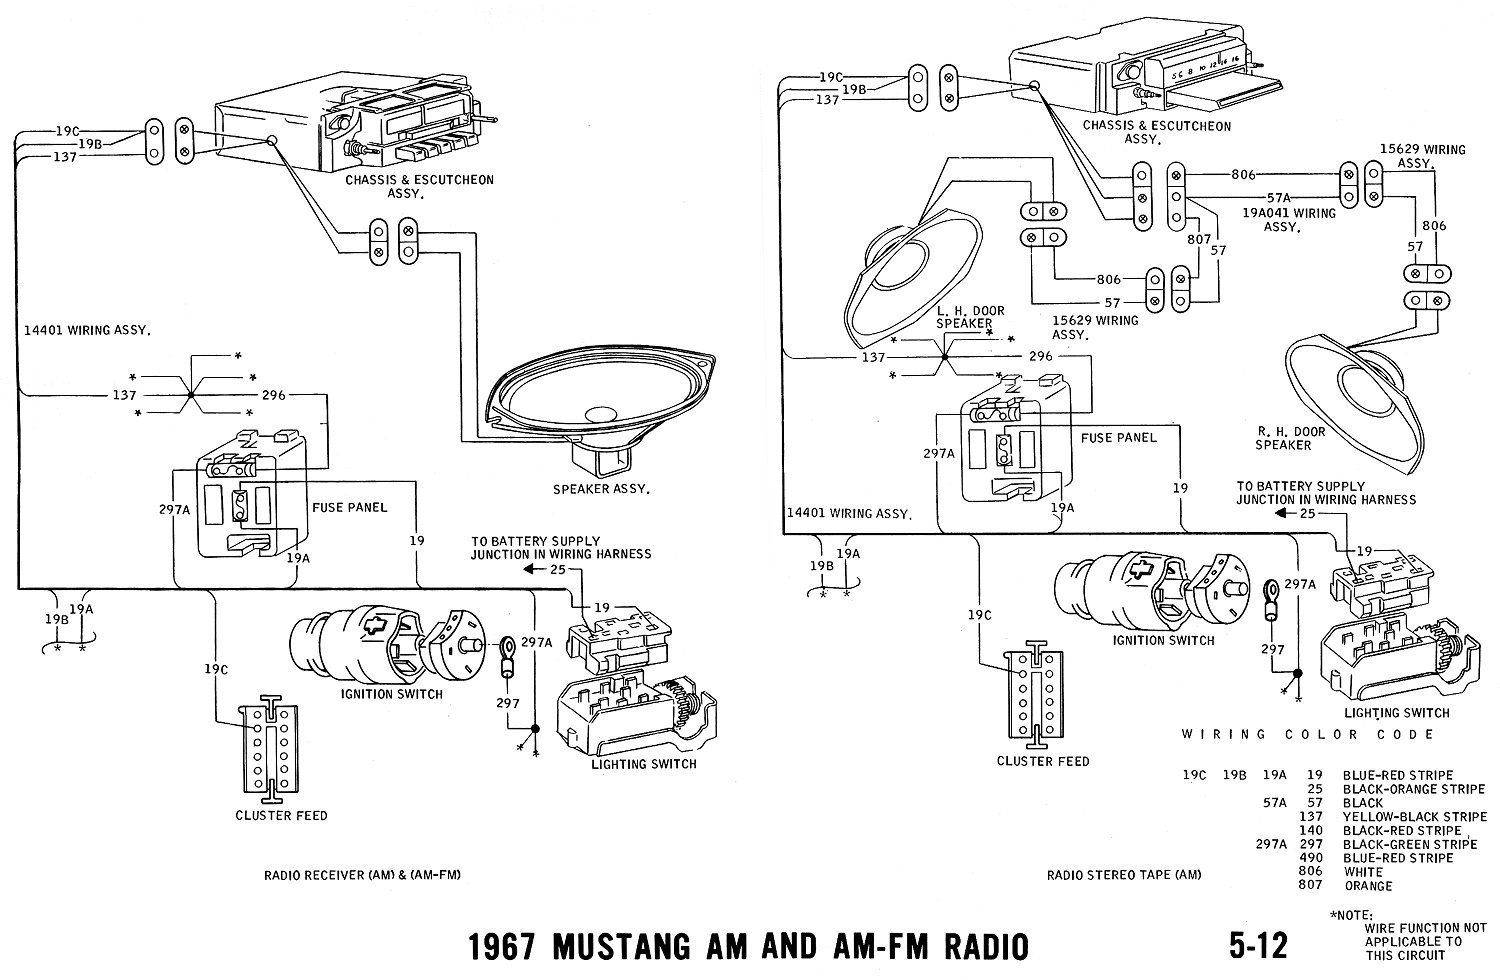 Mustang Radio Wiring Diagram Data Mach 460 1967 And Vacuum Diagrams Average Joe Restoration 71